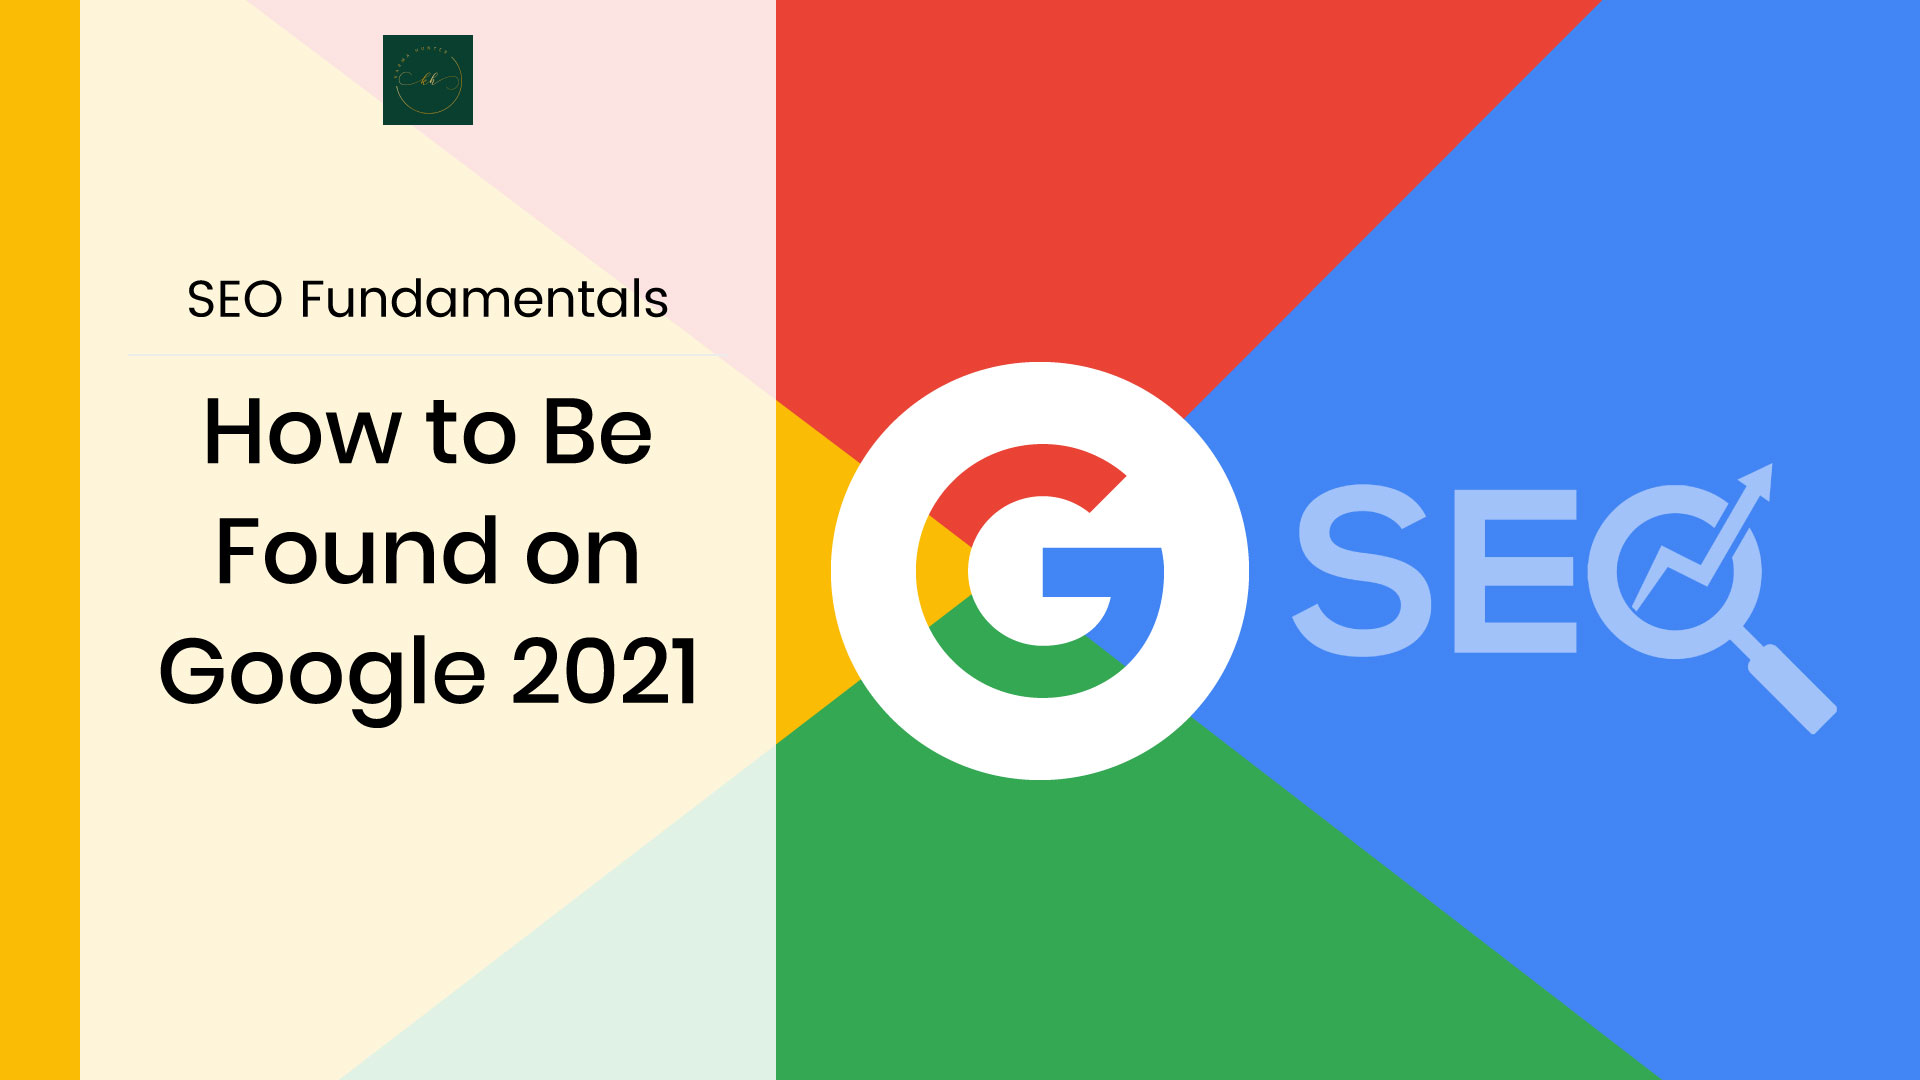 SEO Fundamentals: How to Be Found on Google 2021